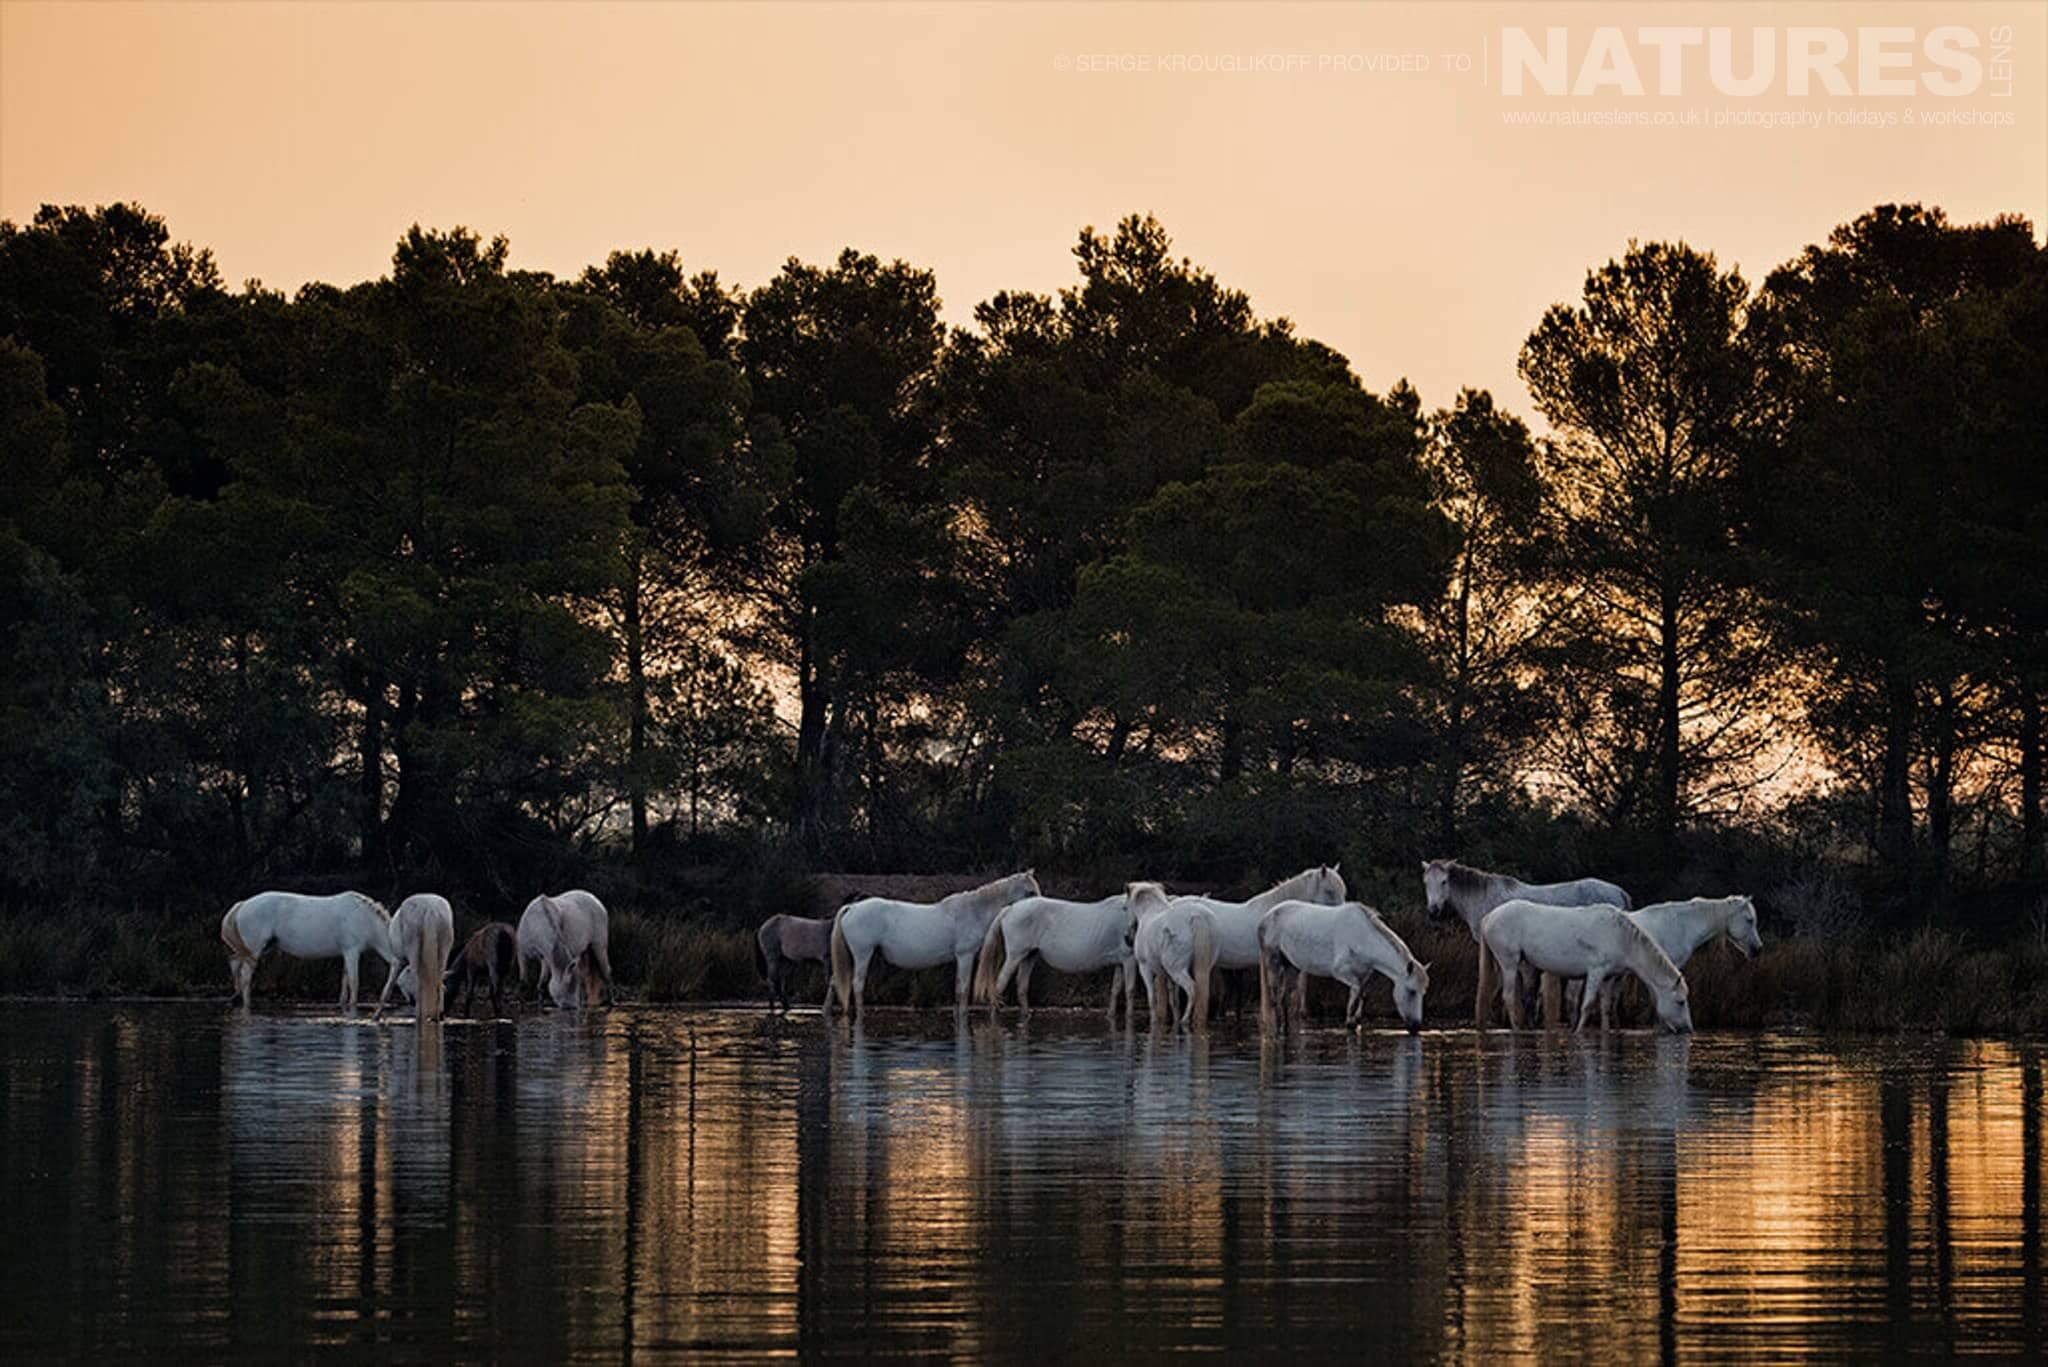 A herd of horses standing in tranquil water and drinking typical of the type of image that may be captured during the NaturesLens Wild White Horses of the Camargue Photography Holiday